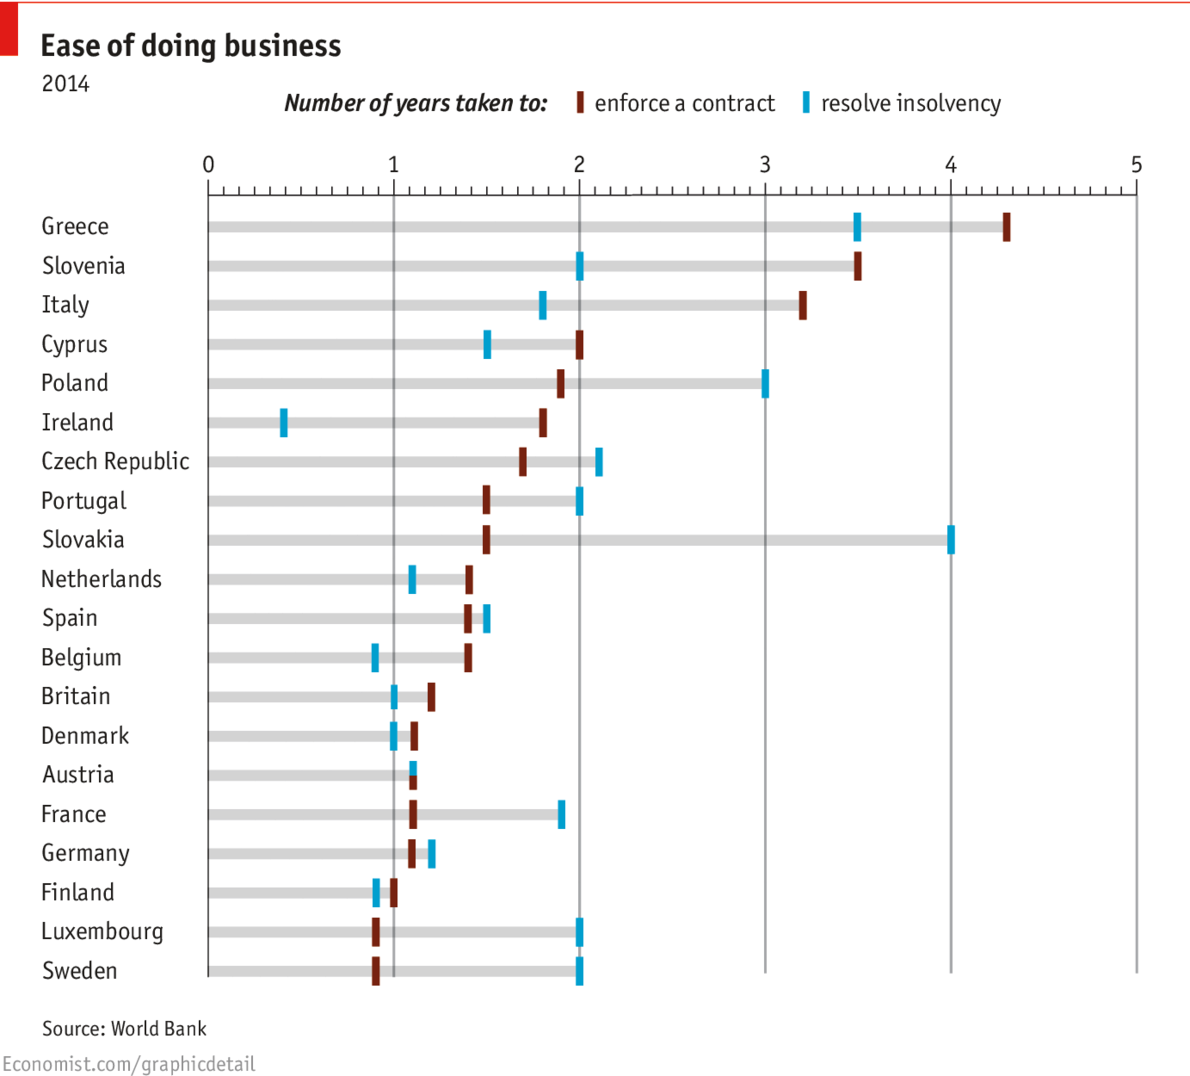 Ease of doing business 2014.